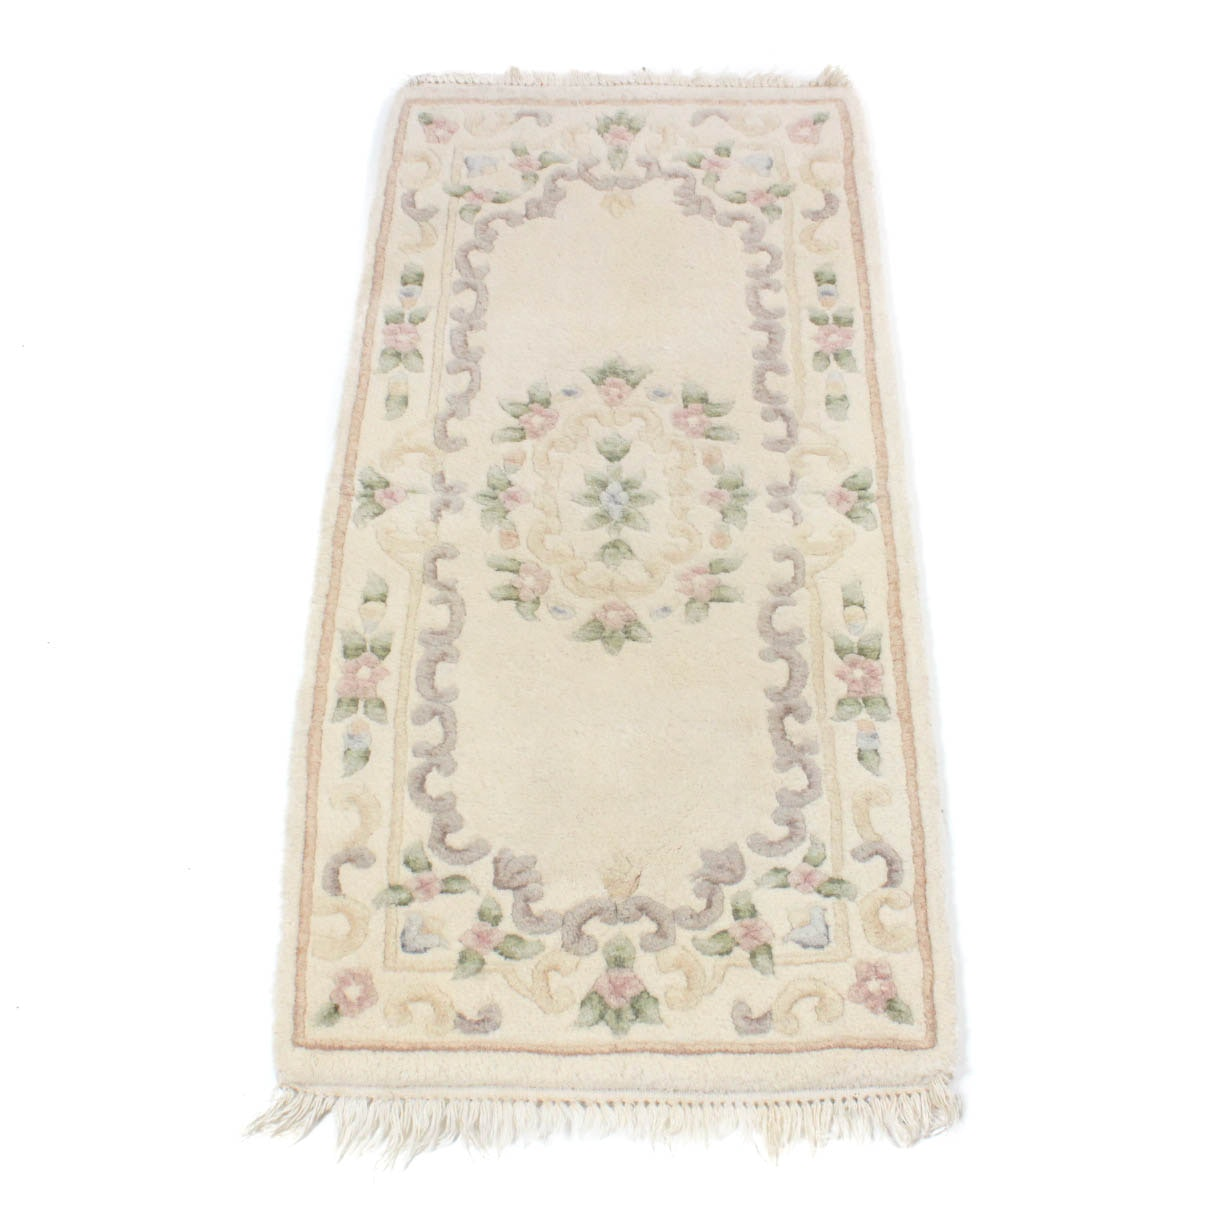 Hand-Knotted Indo-French Aubusson-Style Accent Rug